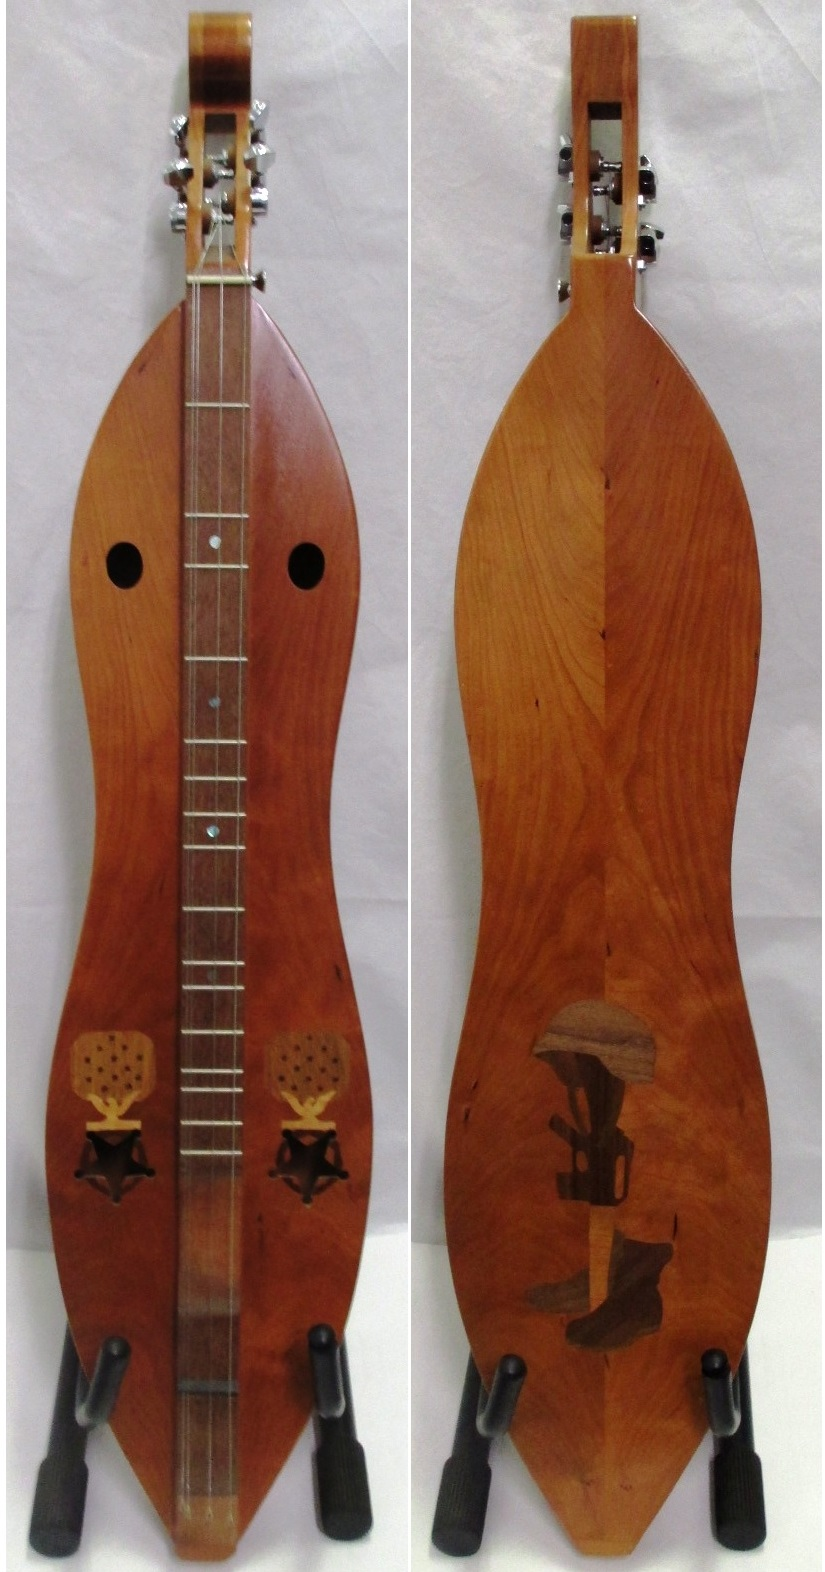 Commemorative Military Dulcimer